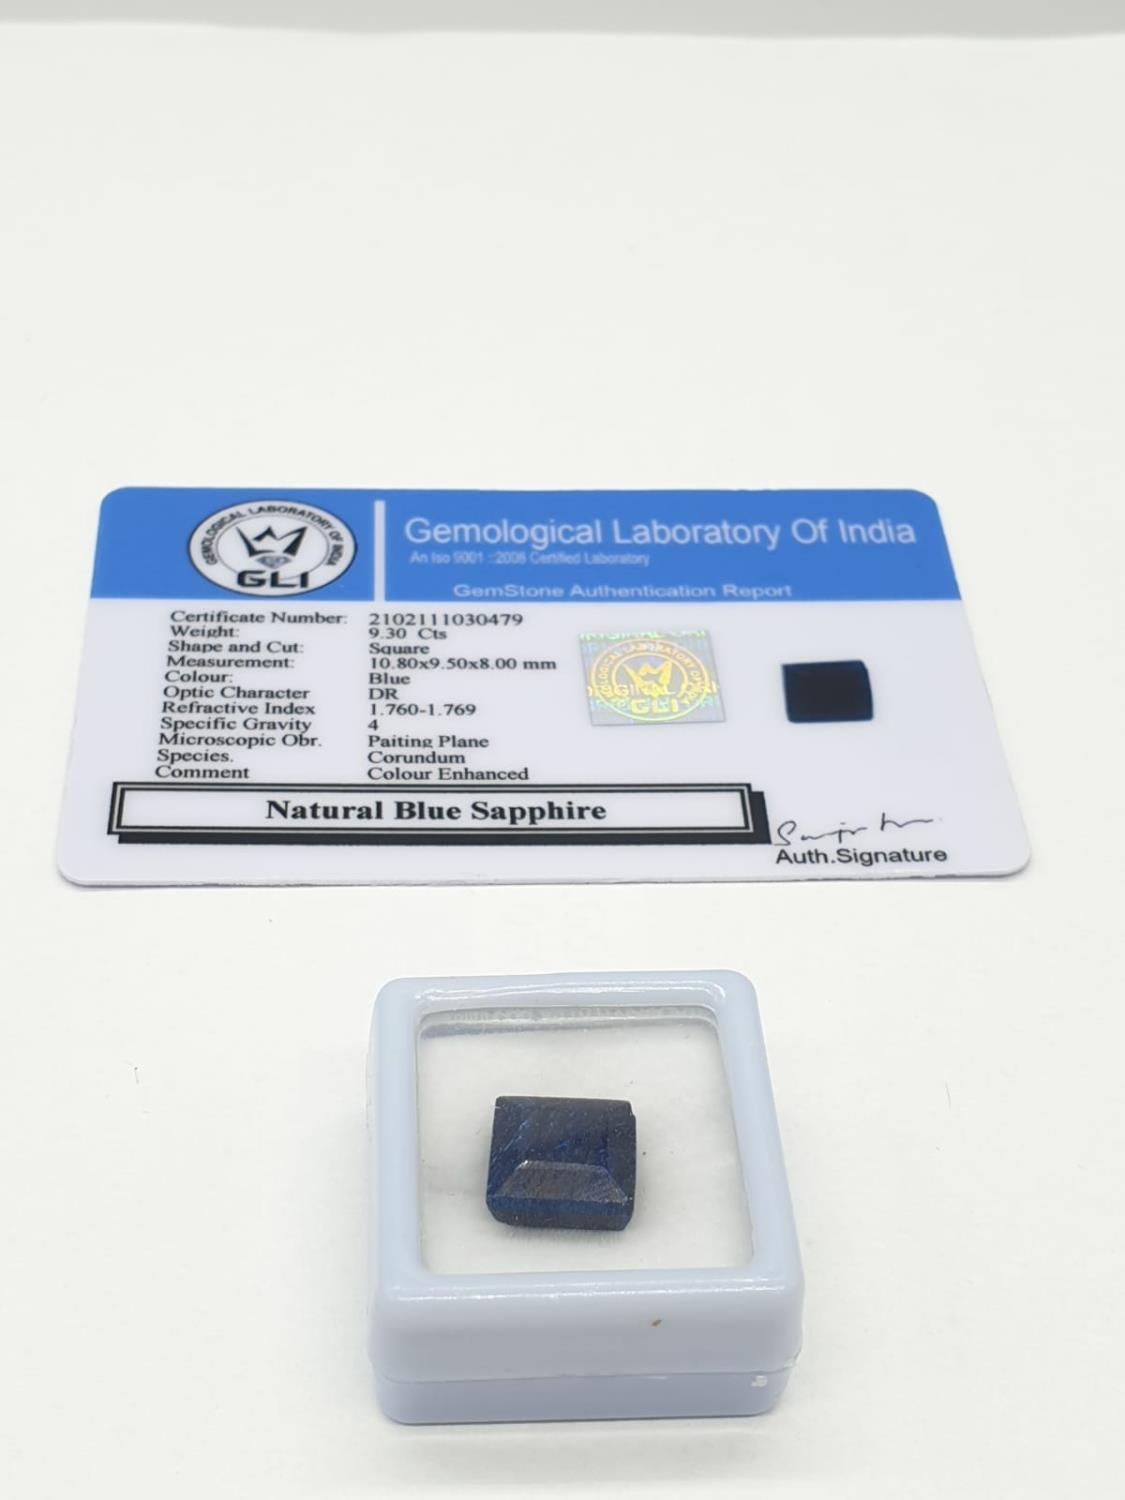 9.30 Cts Natural blue sapphire. Square cut stone. Small chip to one corner. GLI certification - Image 2 of 2